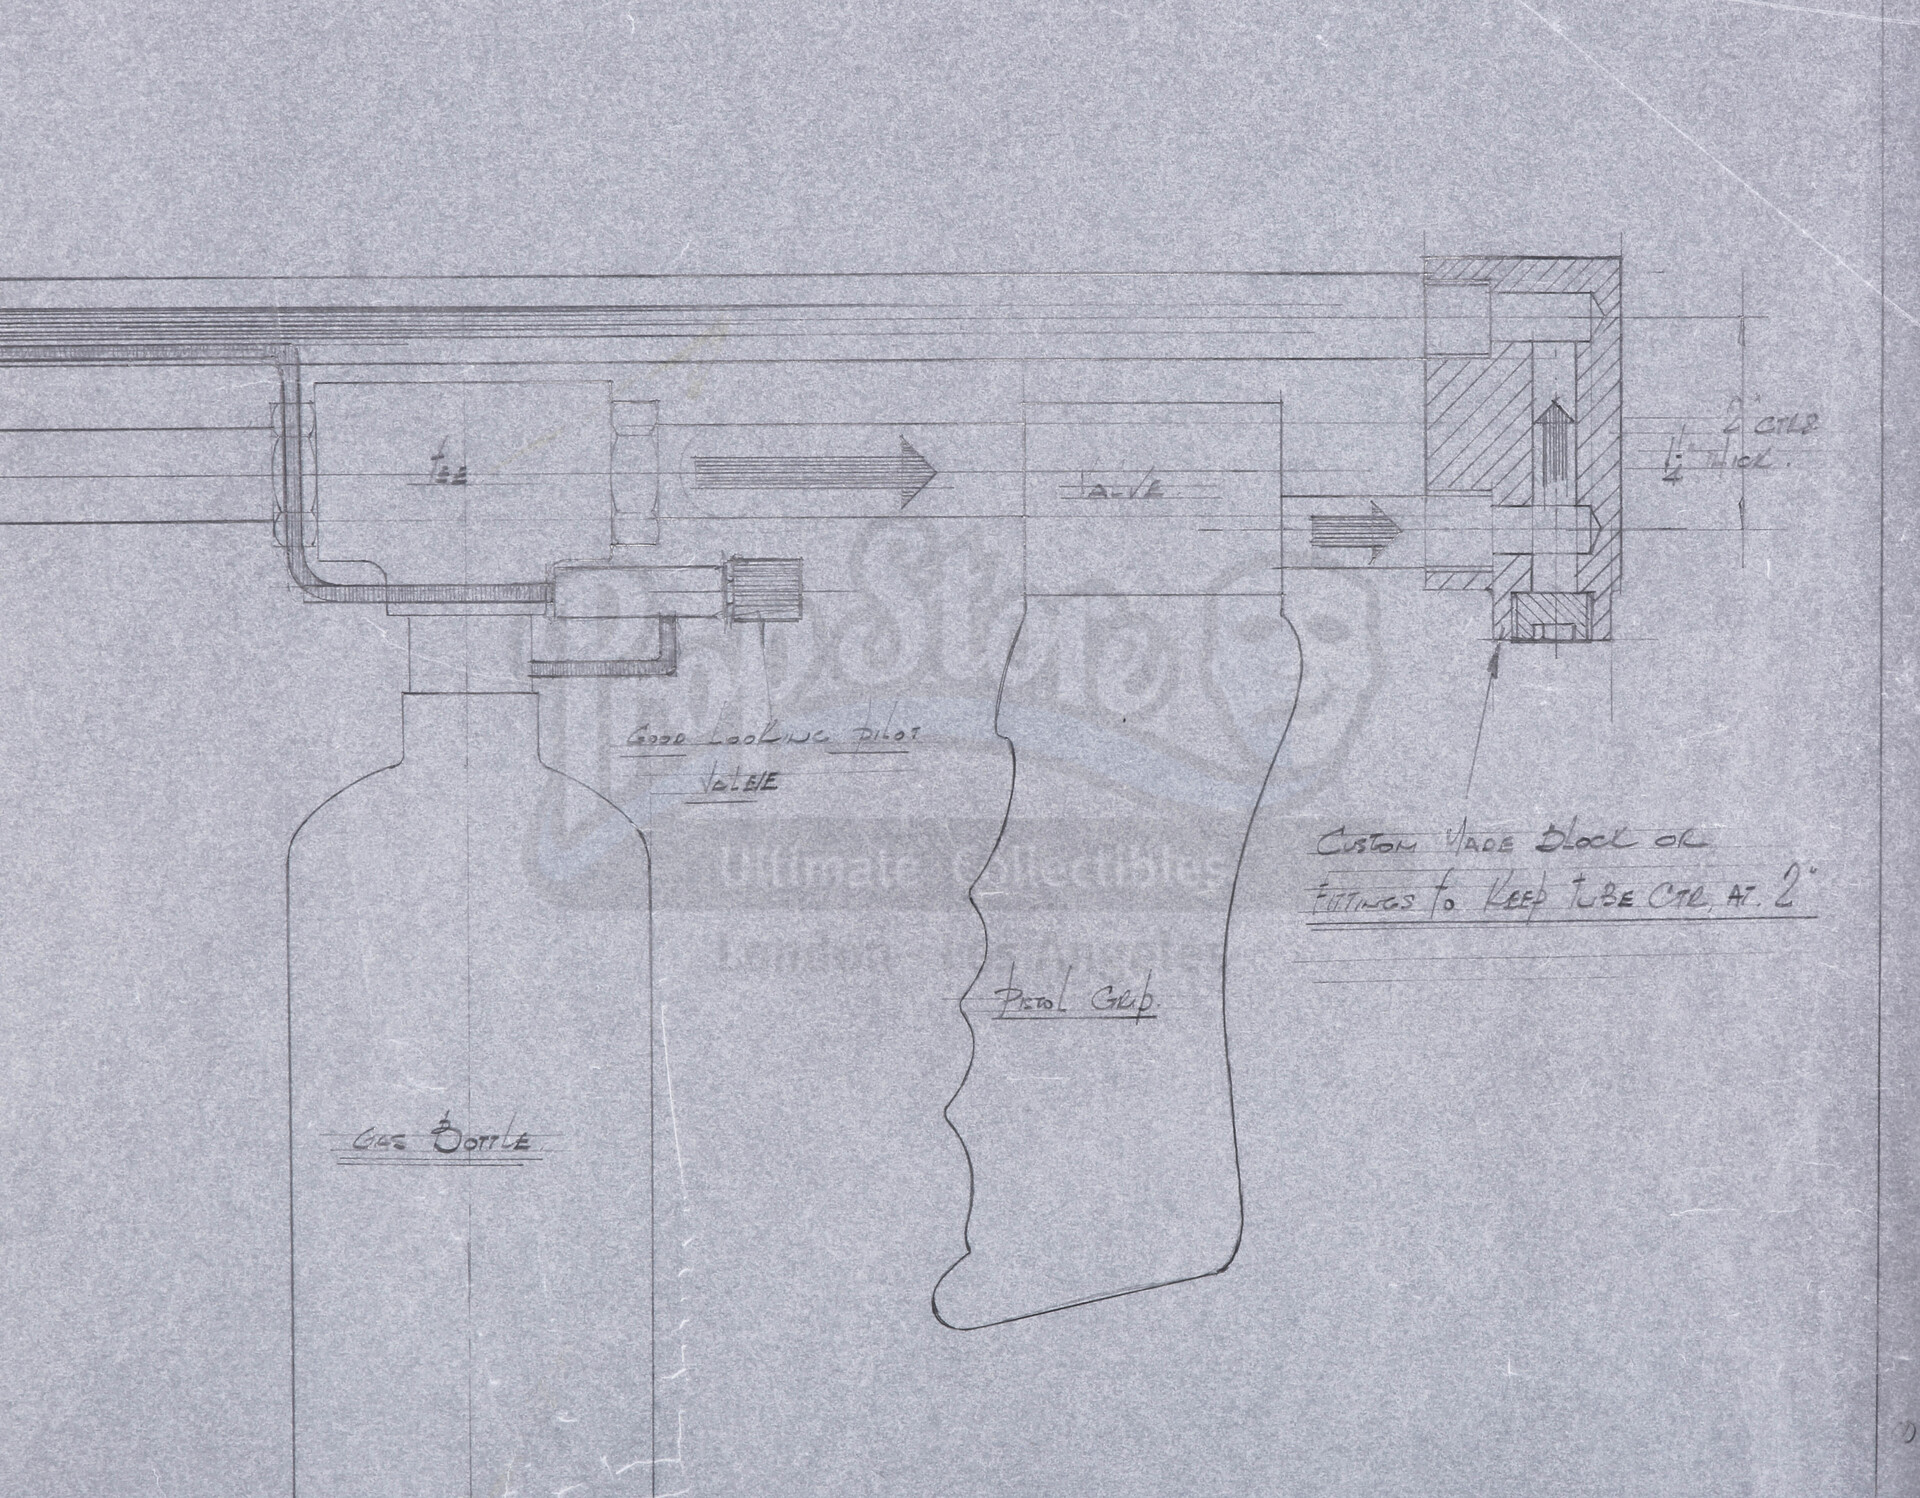 ALIENS (1986) - Three Hand-drawn Flamethrower Production Design And Concept Artworks - Image 11 of 18